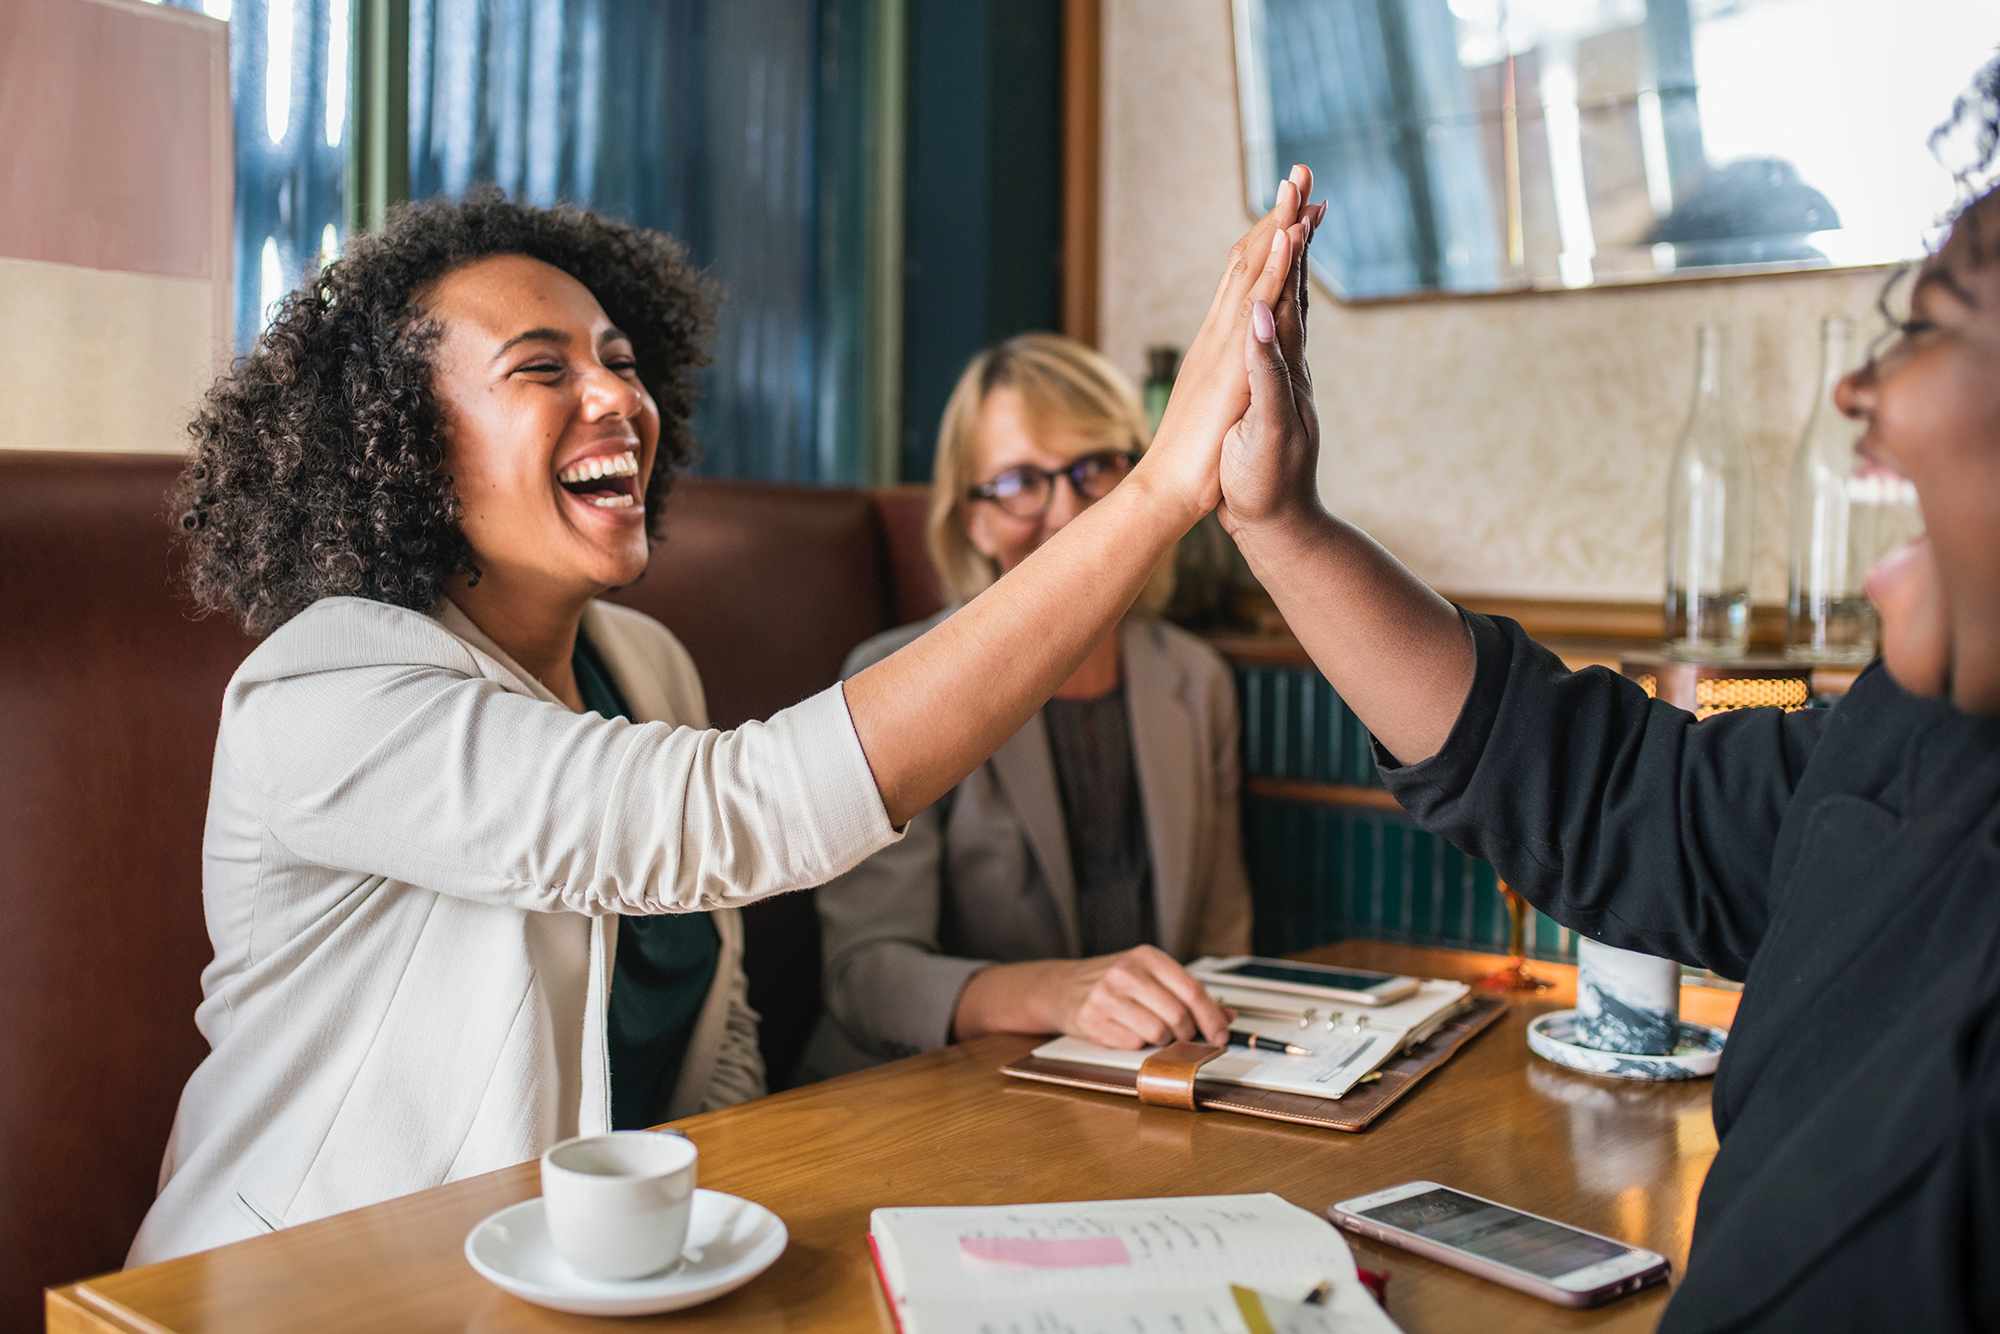 Two women high fiving each other